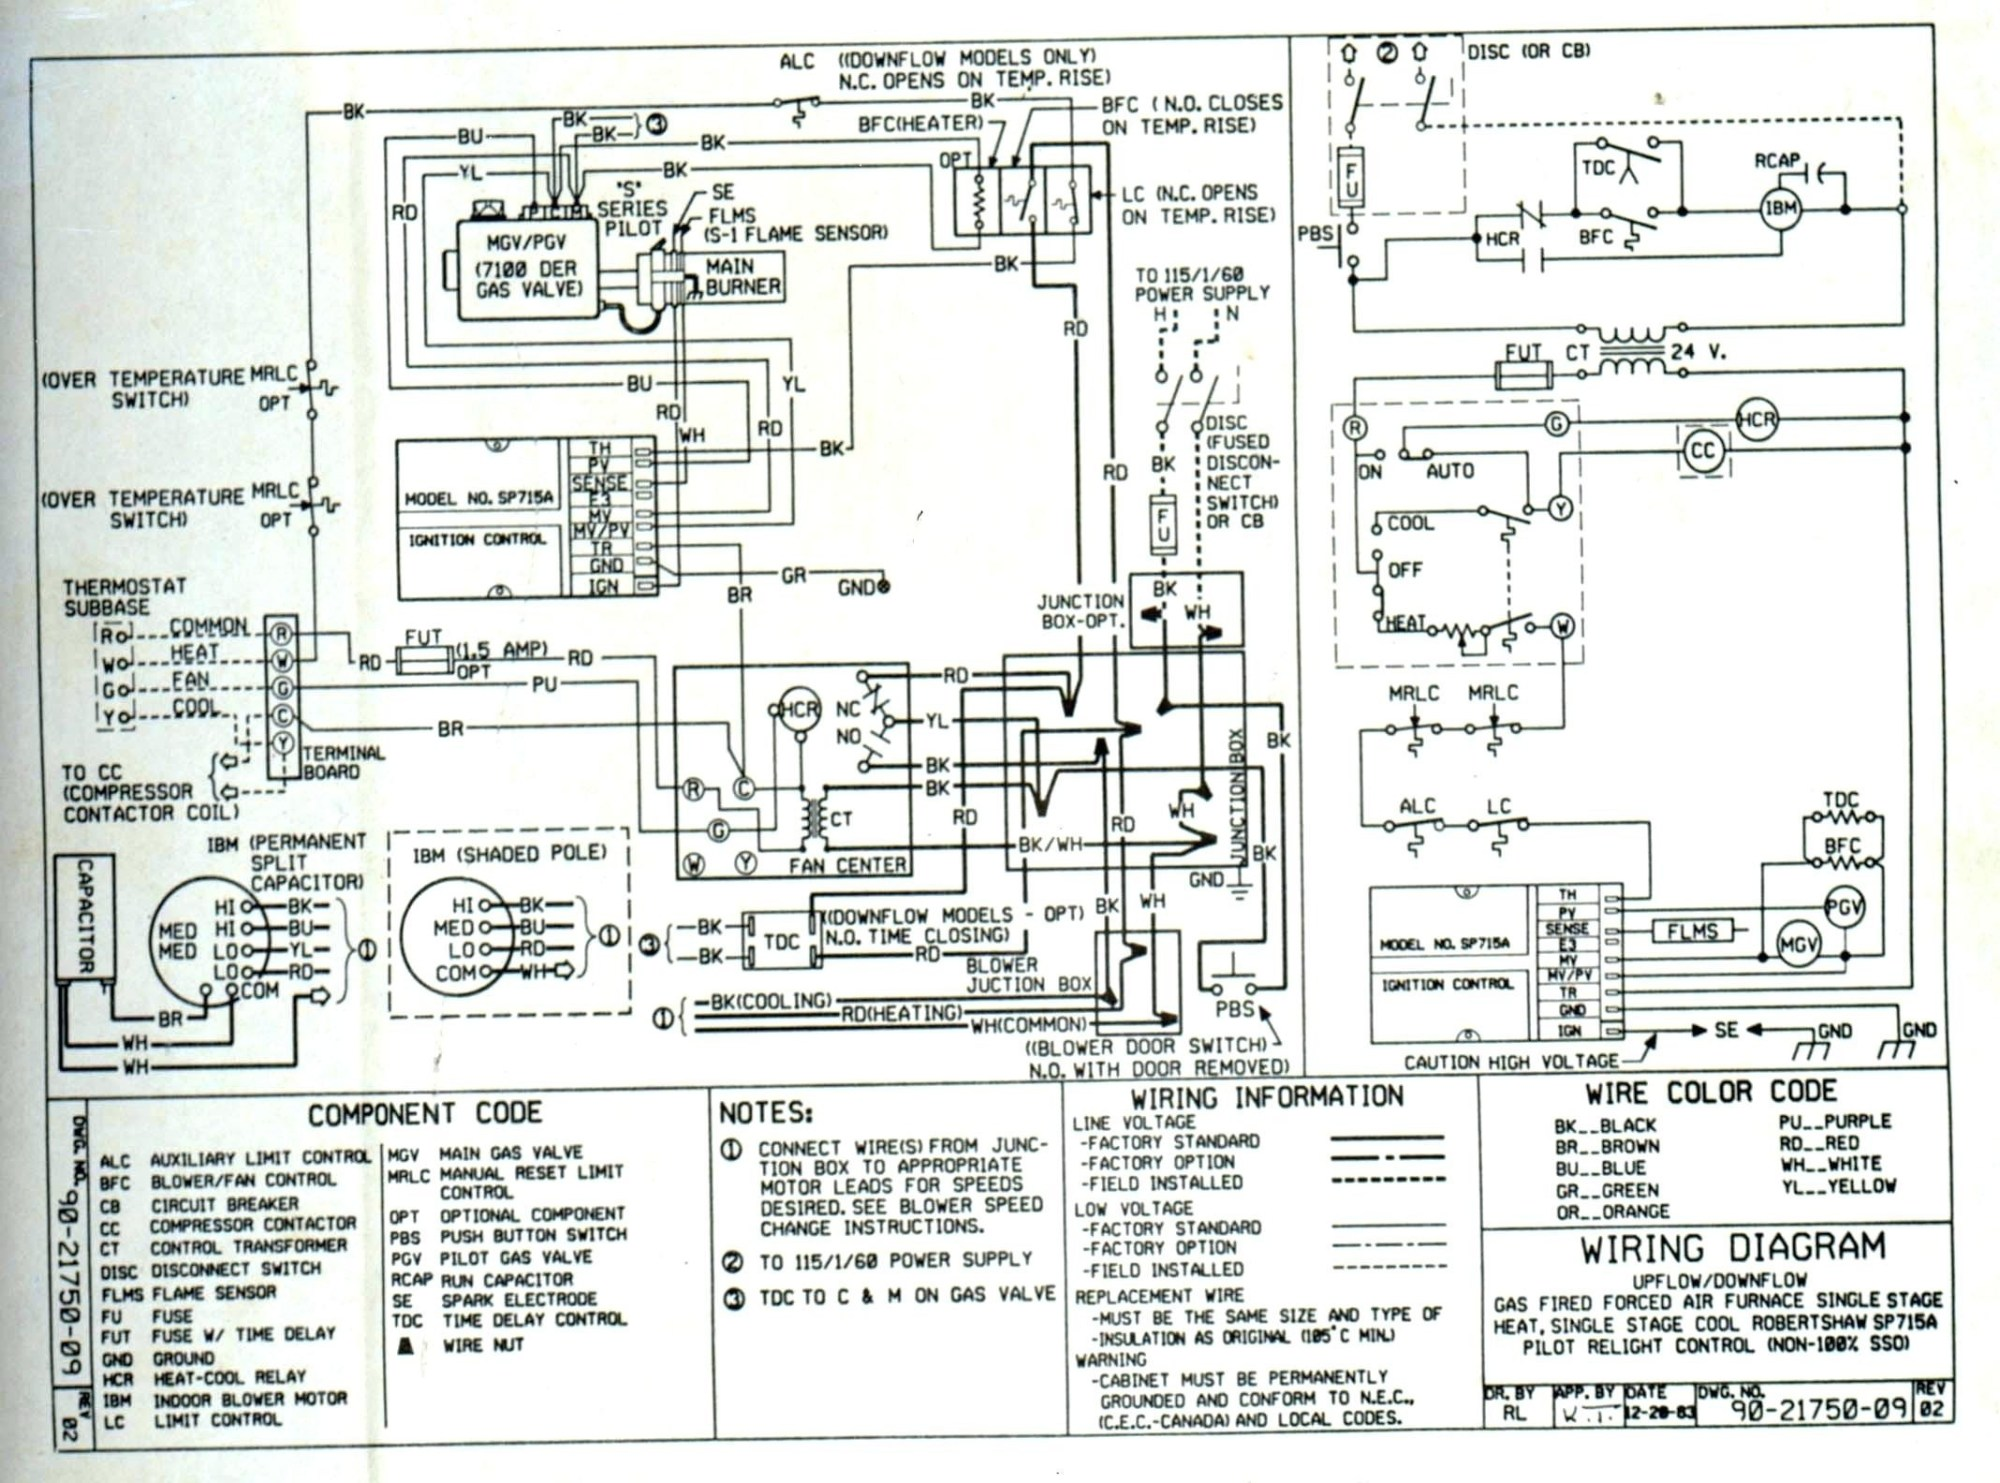 hight resolution of hvac wiring diagram pdf residential wiring diagram symbols reference hvac wiring diagram symbols pdf inspirationa